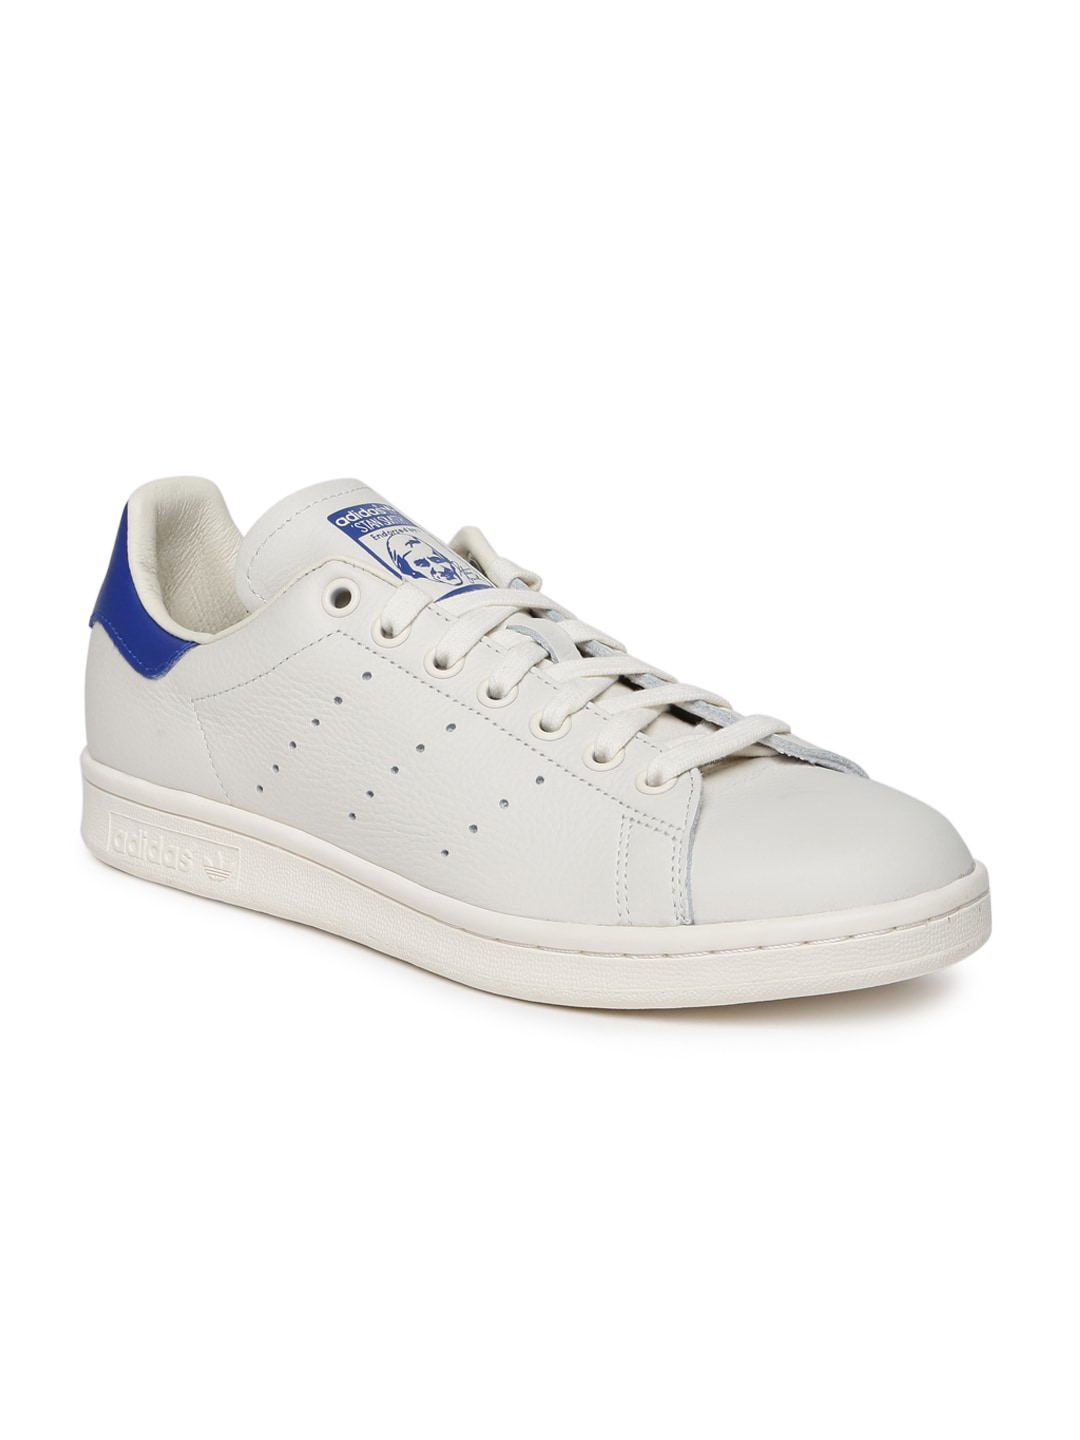 850a114f21b1 Adidas Stan Smith Sneakers - Buy Stan Smith Shoes and Sneakers Online in  India - Myntra